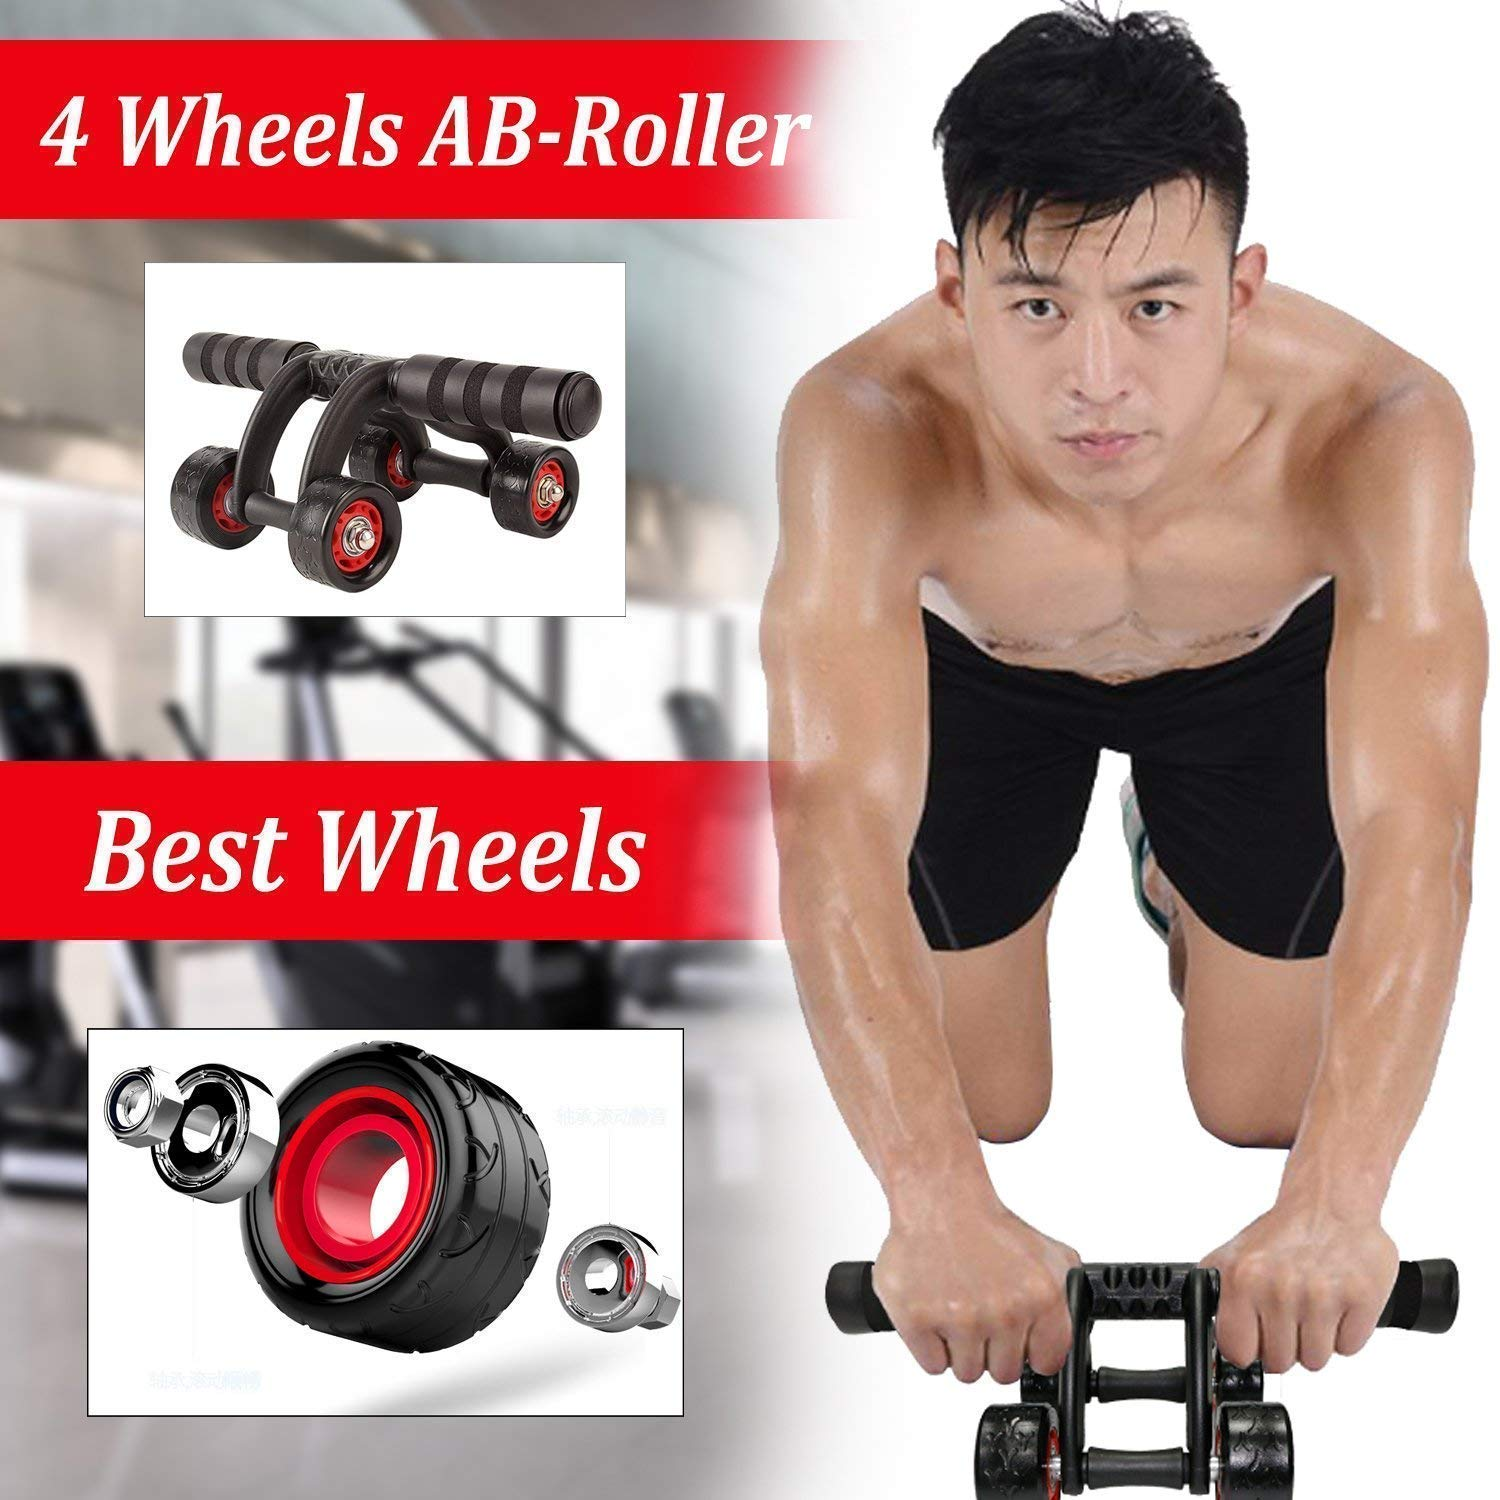 Abdominal Wheel - Taking Fitness To The Next Level